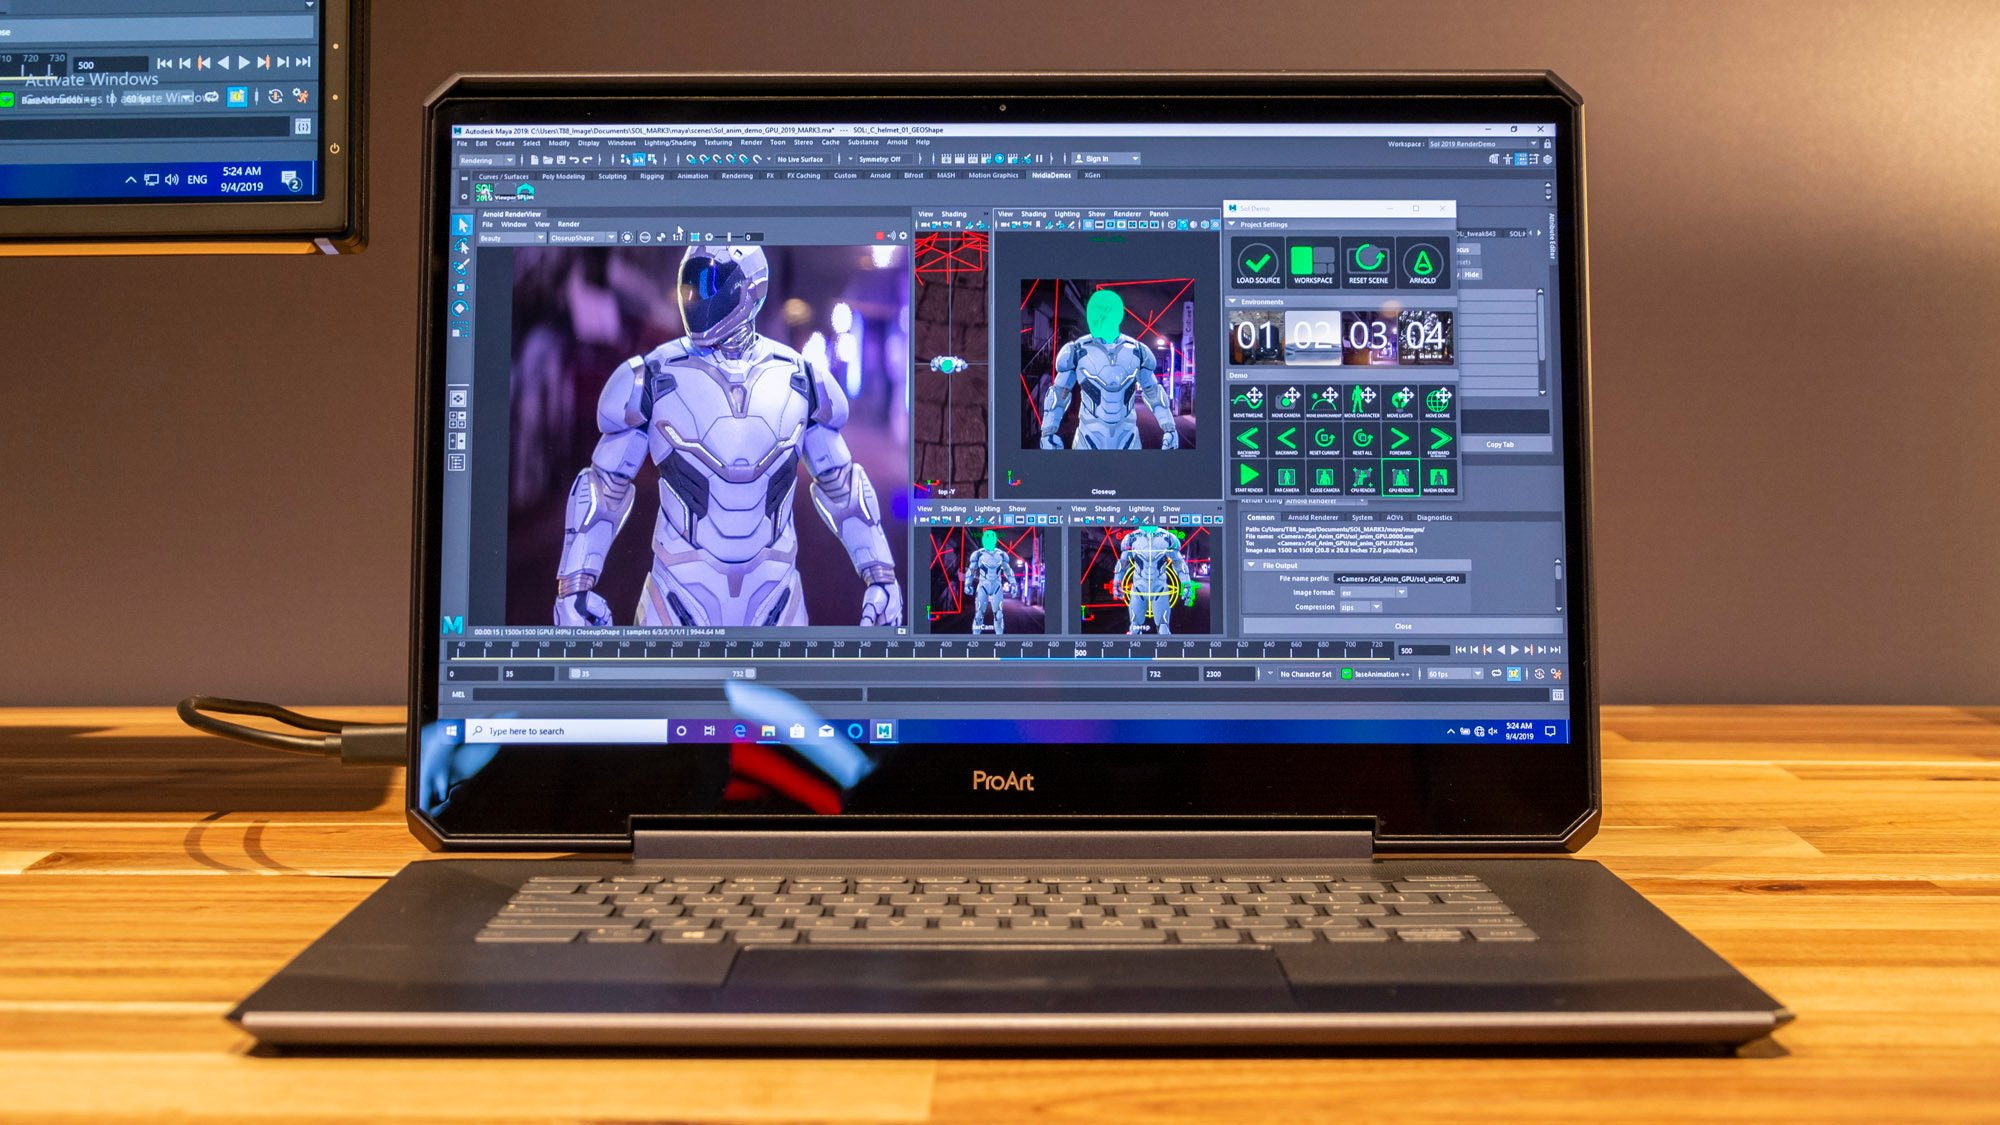 Asus Proart Studiobook One Hands On Review The World S